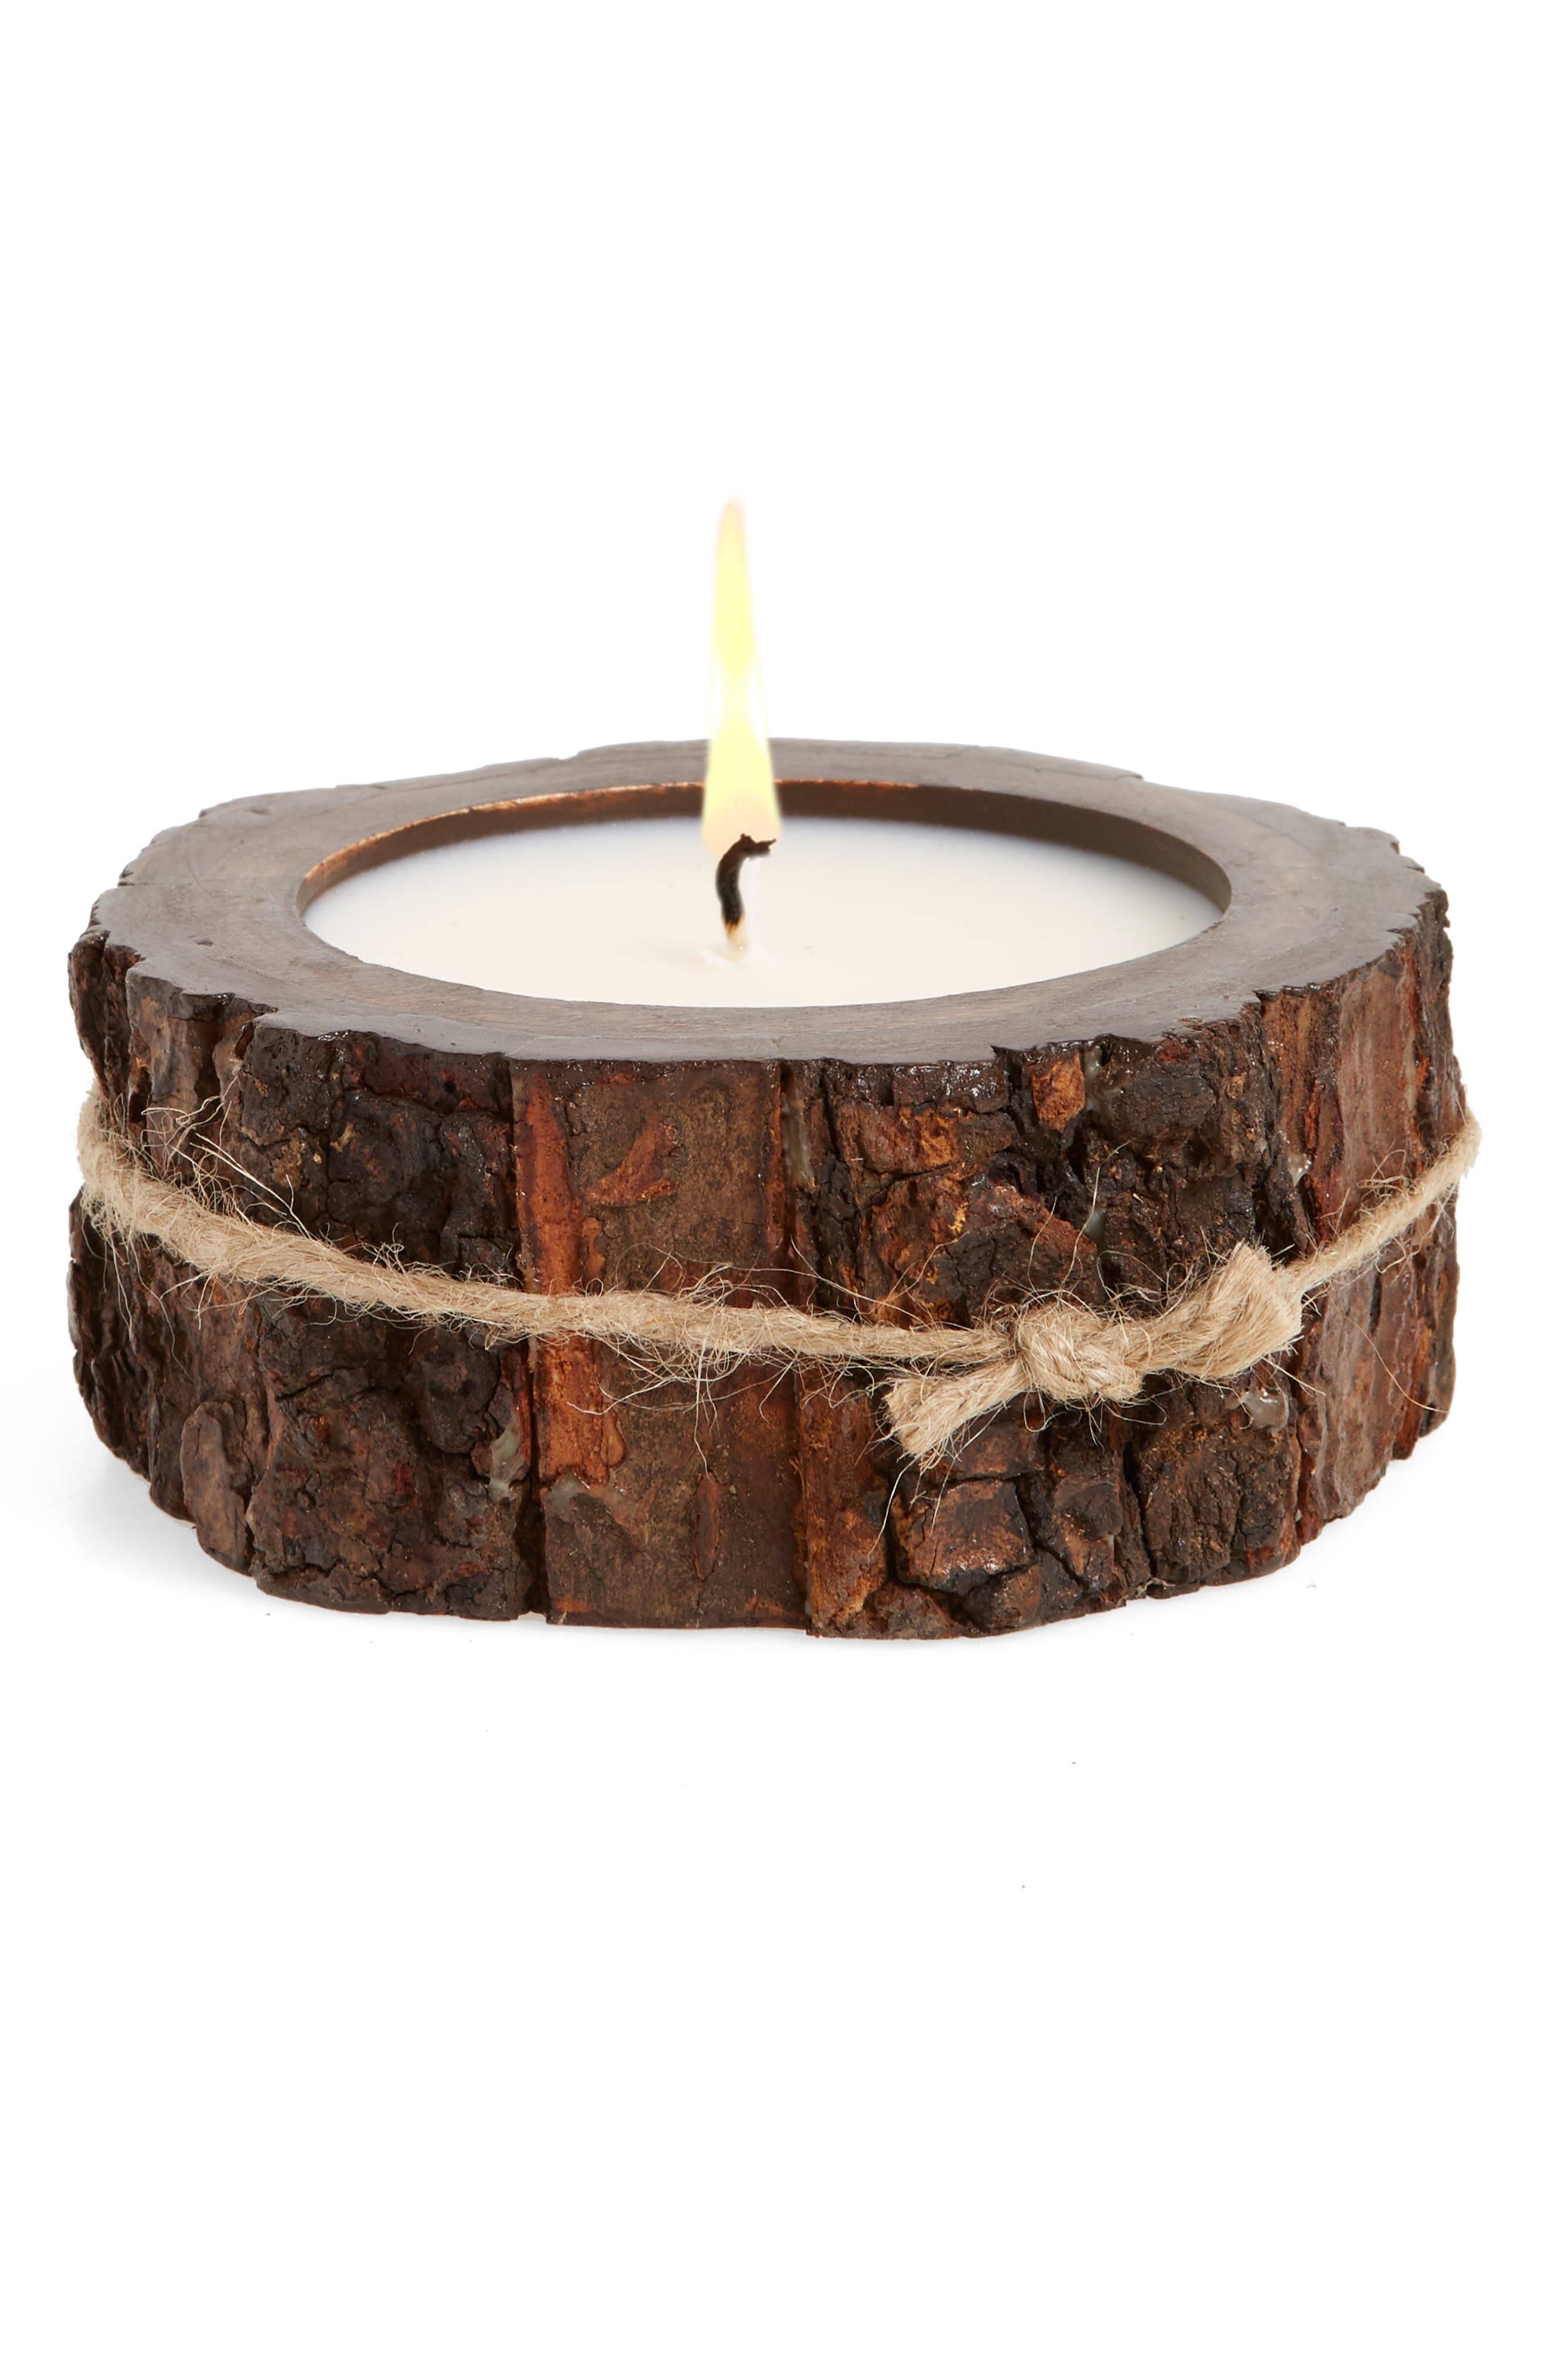 Himalayan Trading Post Tree Bark Candle